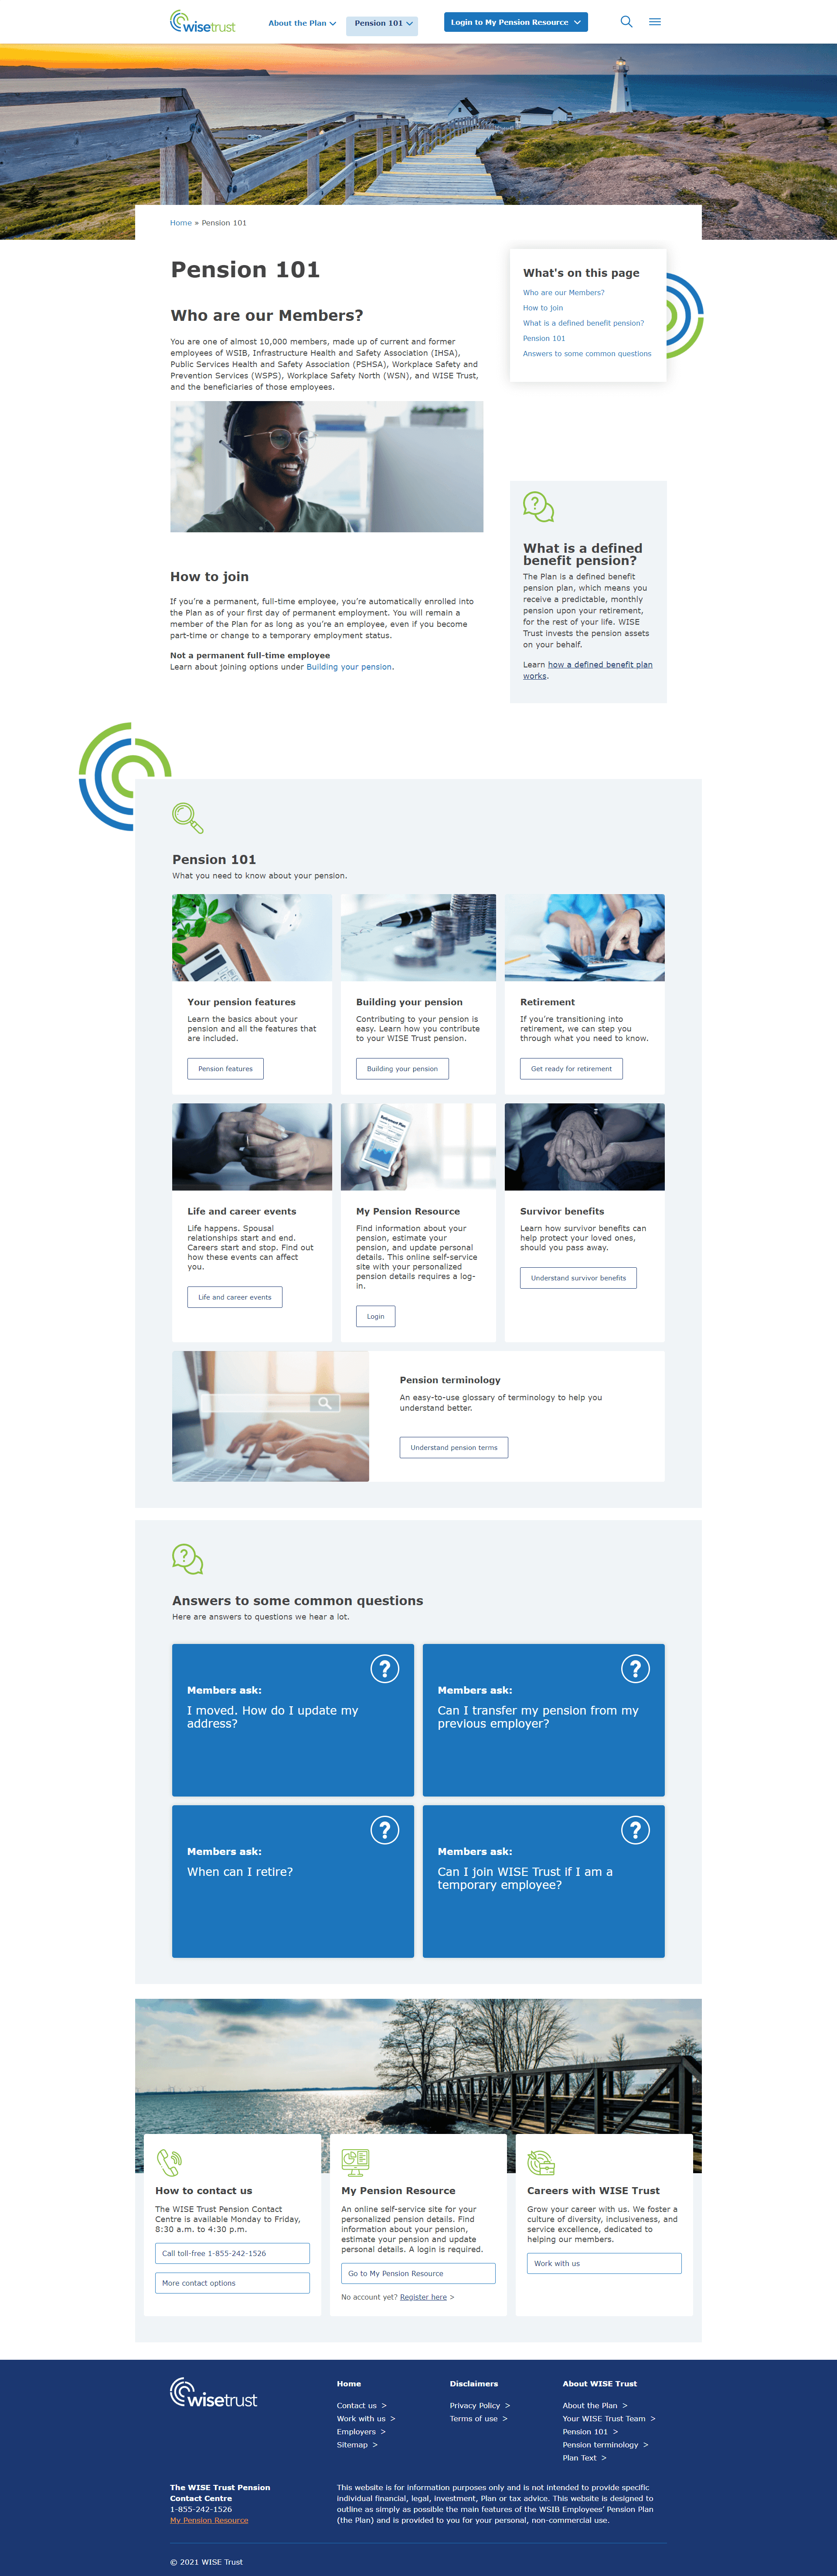 Image of WISE Trust's Pension 101 landing page for members.